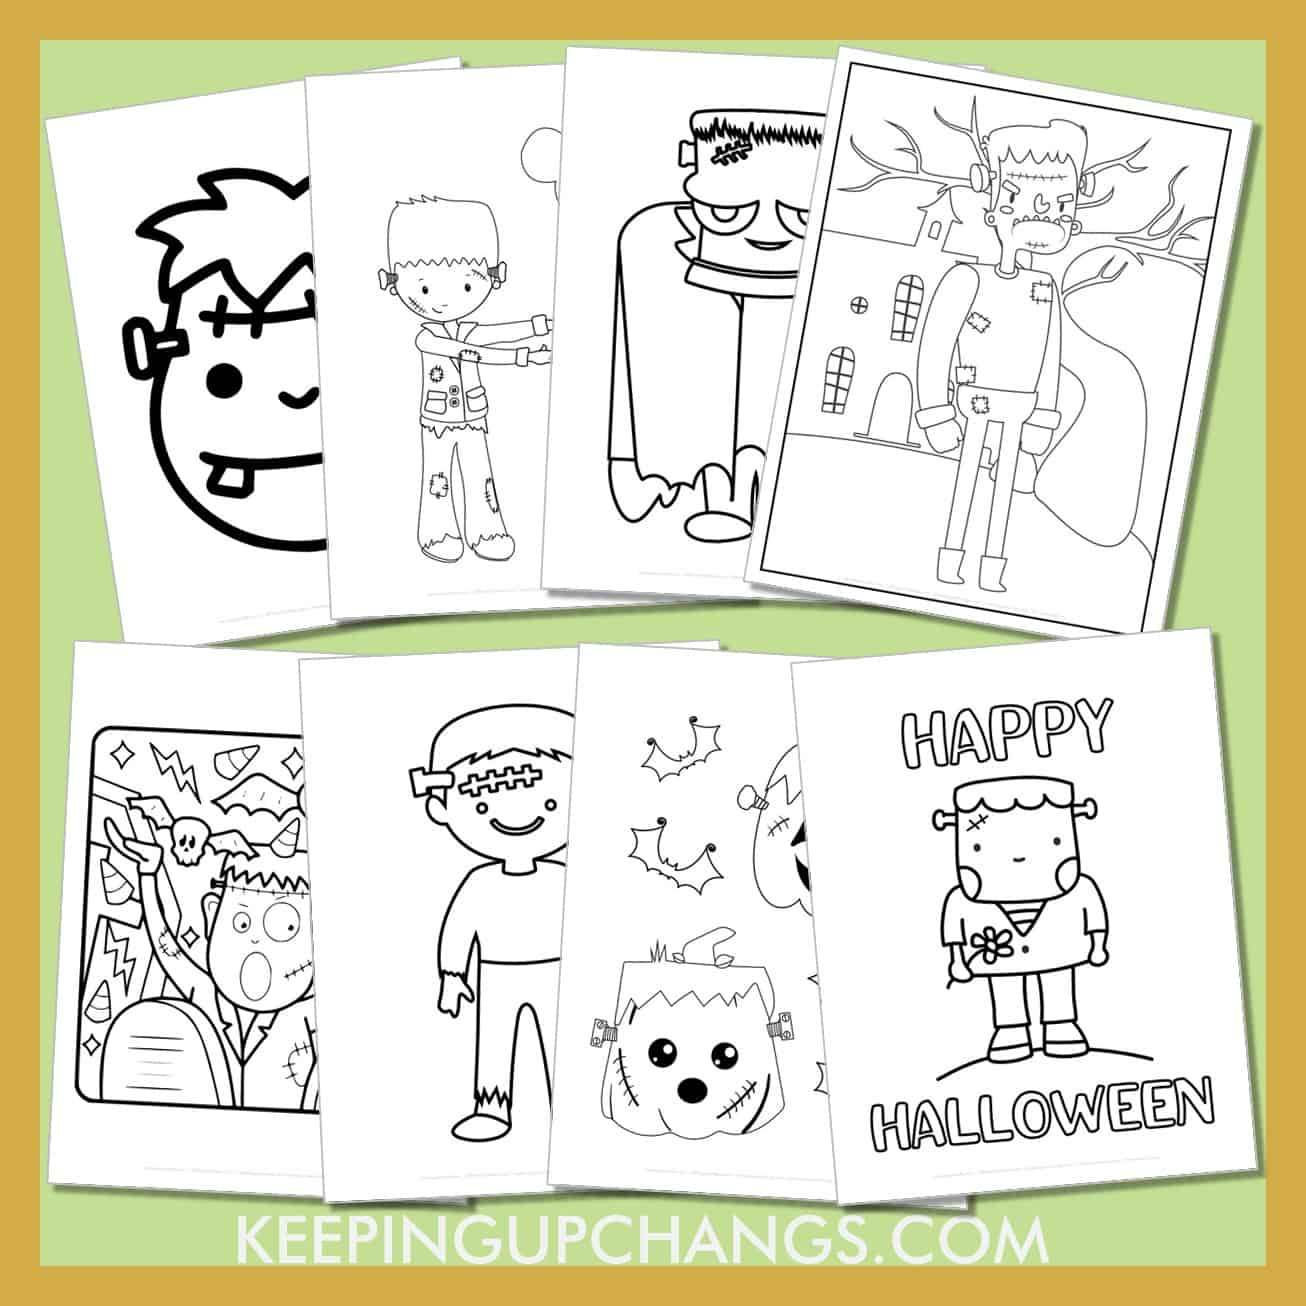 frankenstein colouring sheets including cute baby cartoon to realistic classic movie monster.